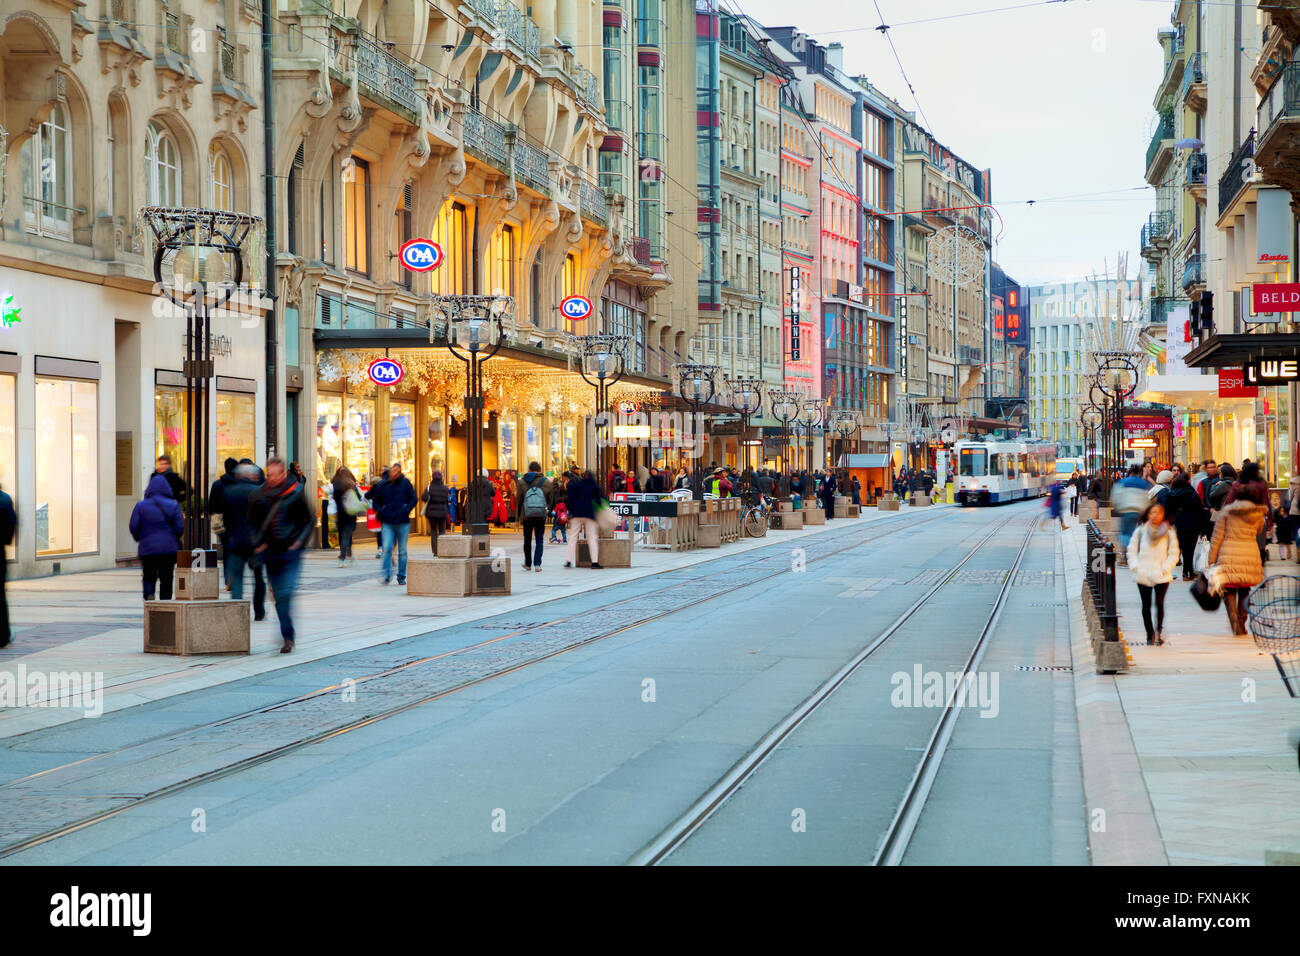 GENEVA, SWITZERLAND - NOVEMBER 27: Rue du Rhone with people on November 27, 2015 in Geneva, Switzerland. - Stock Image